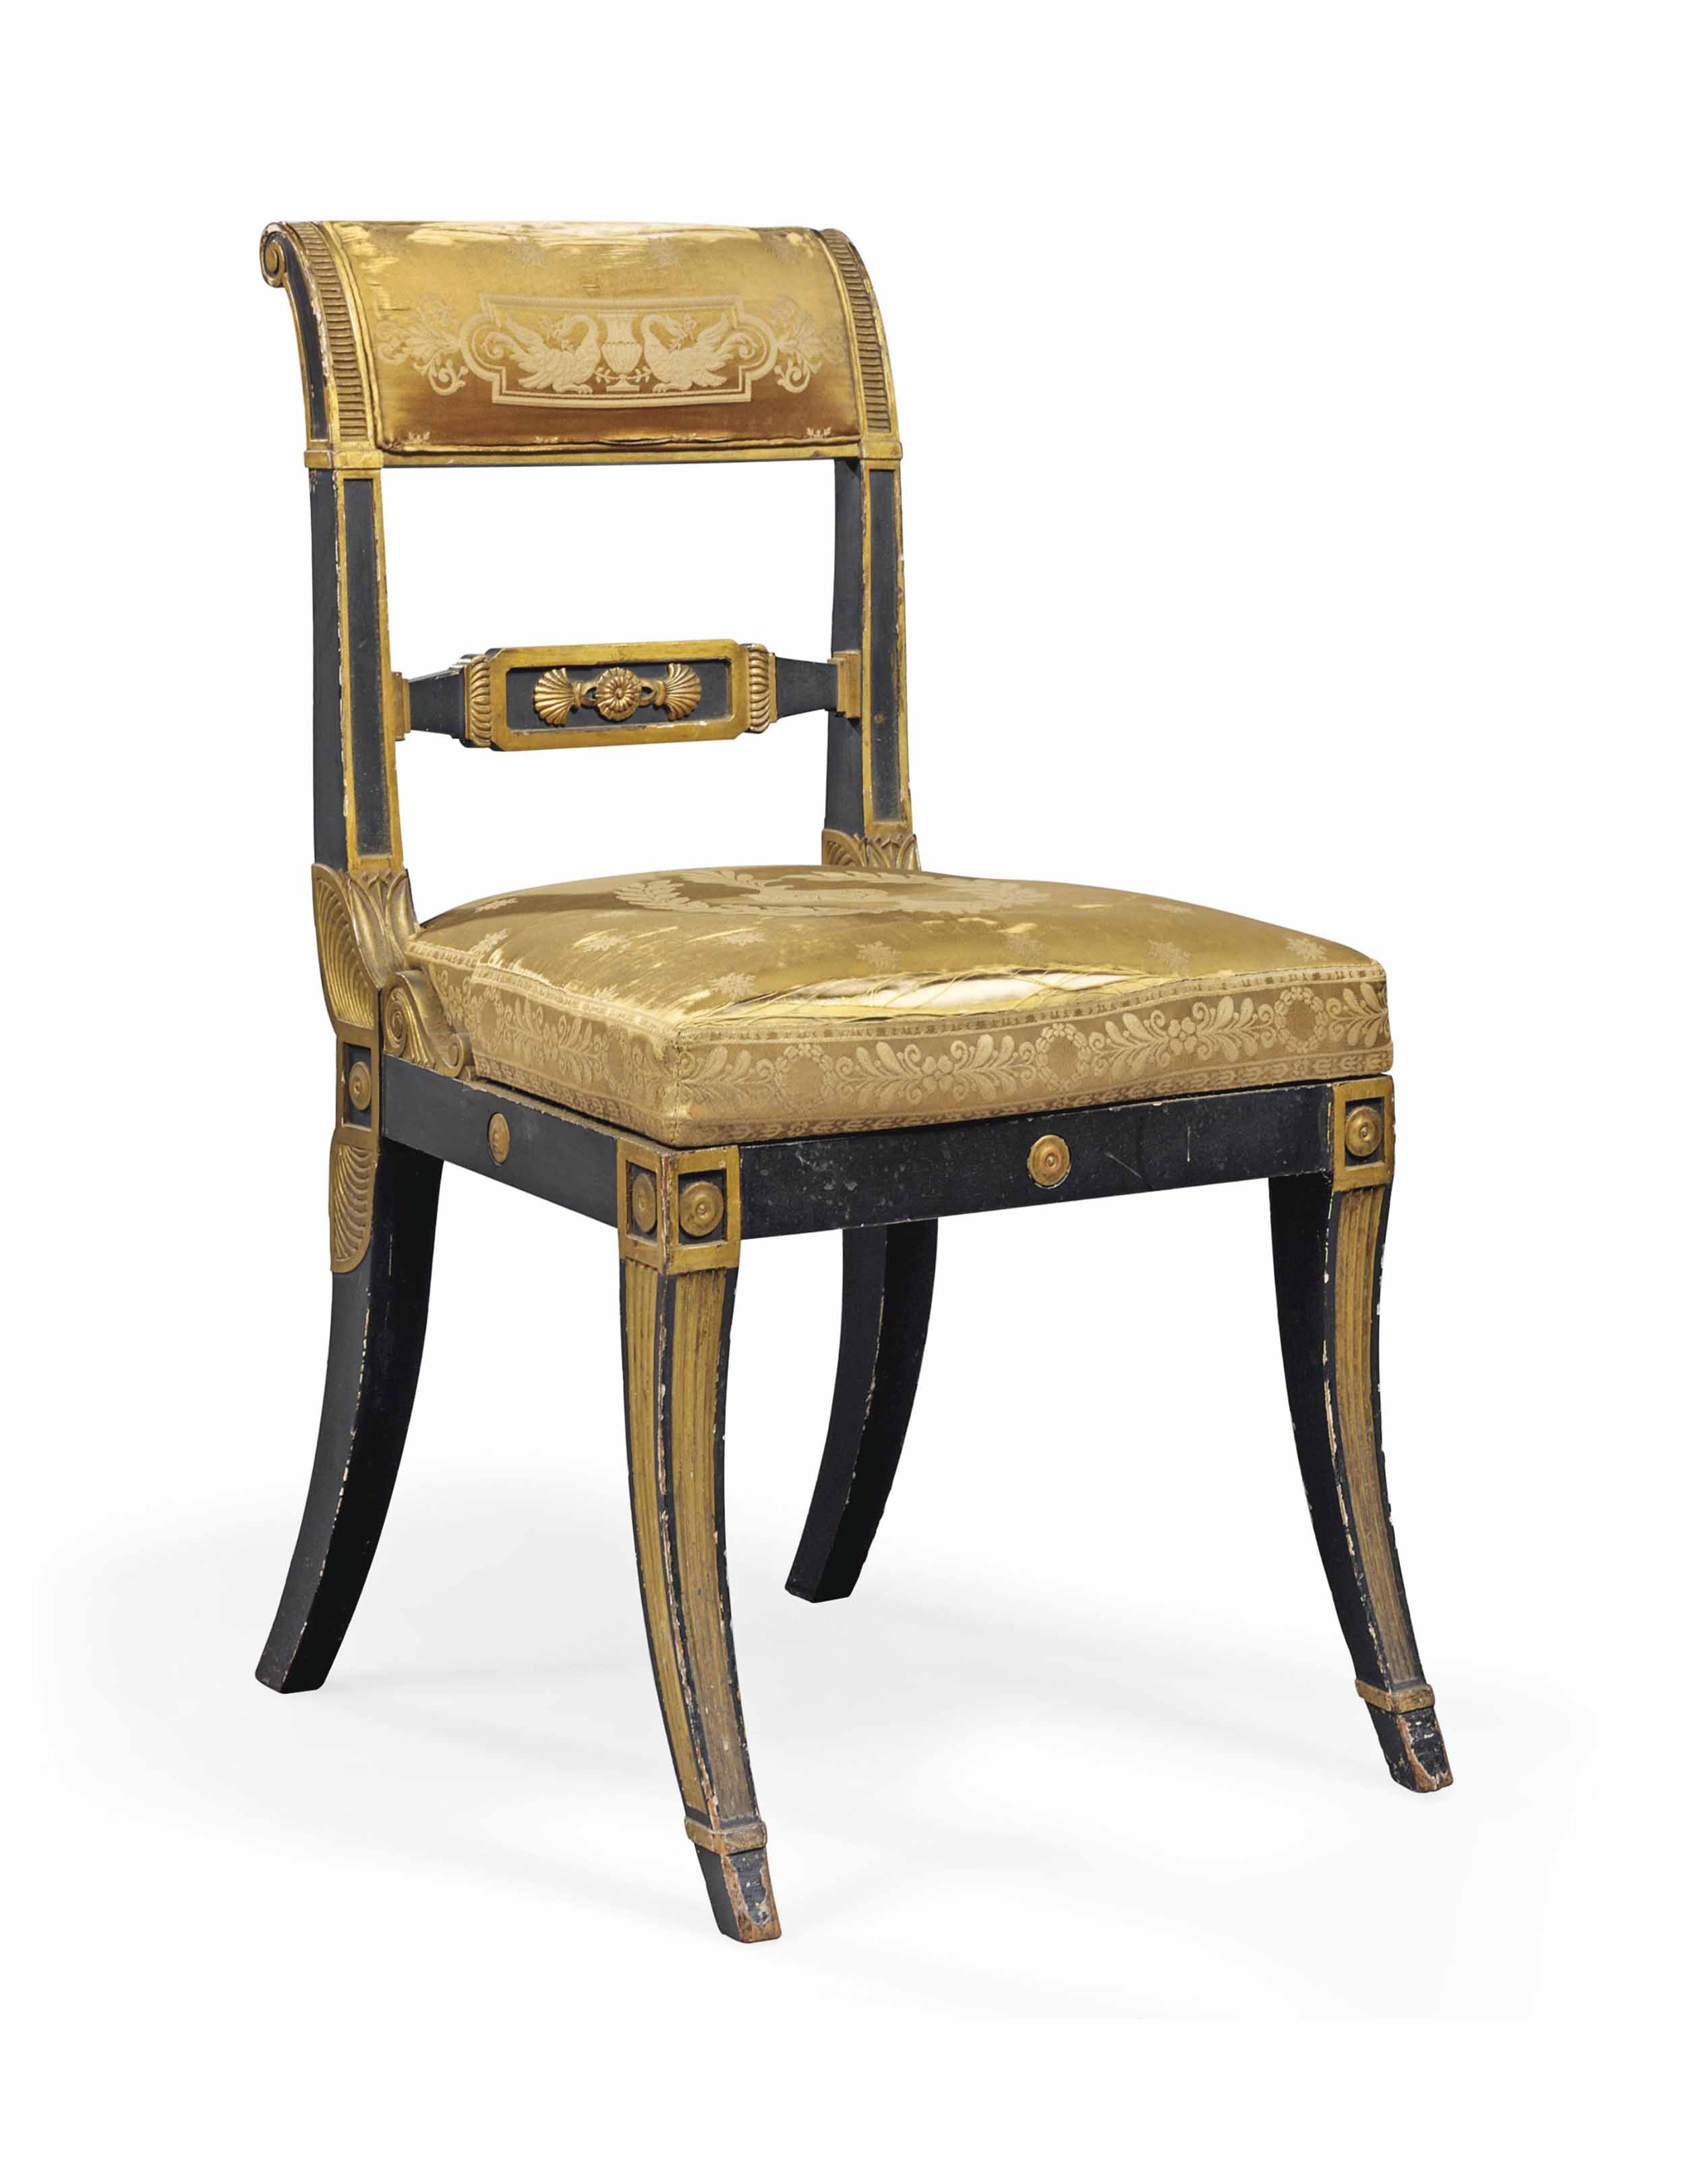 A REGENCY PARCEL-GILT AND EBONISED SIDE CHAIR